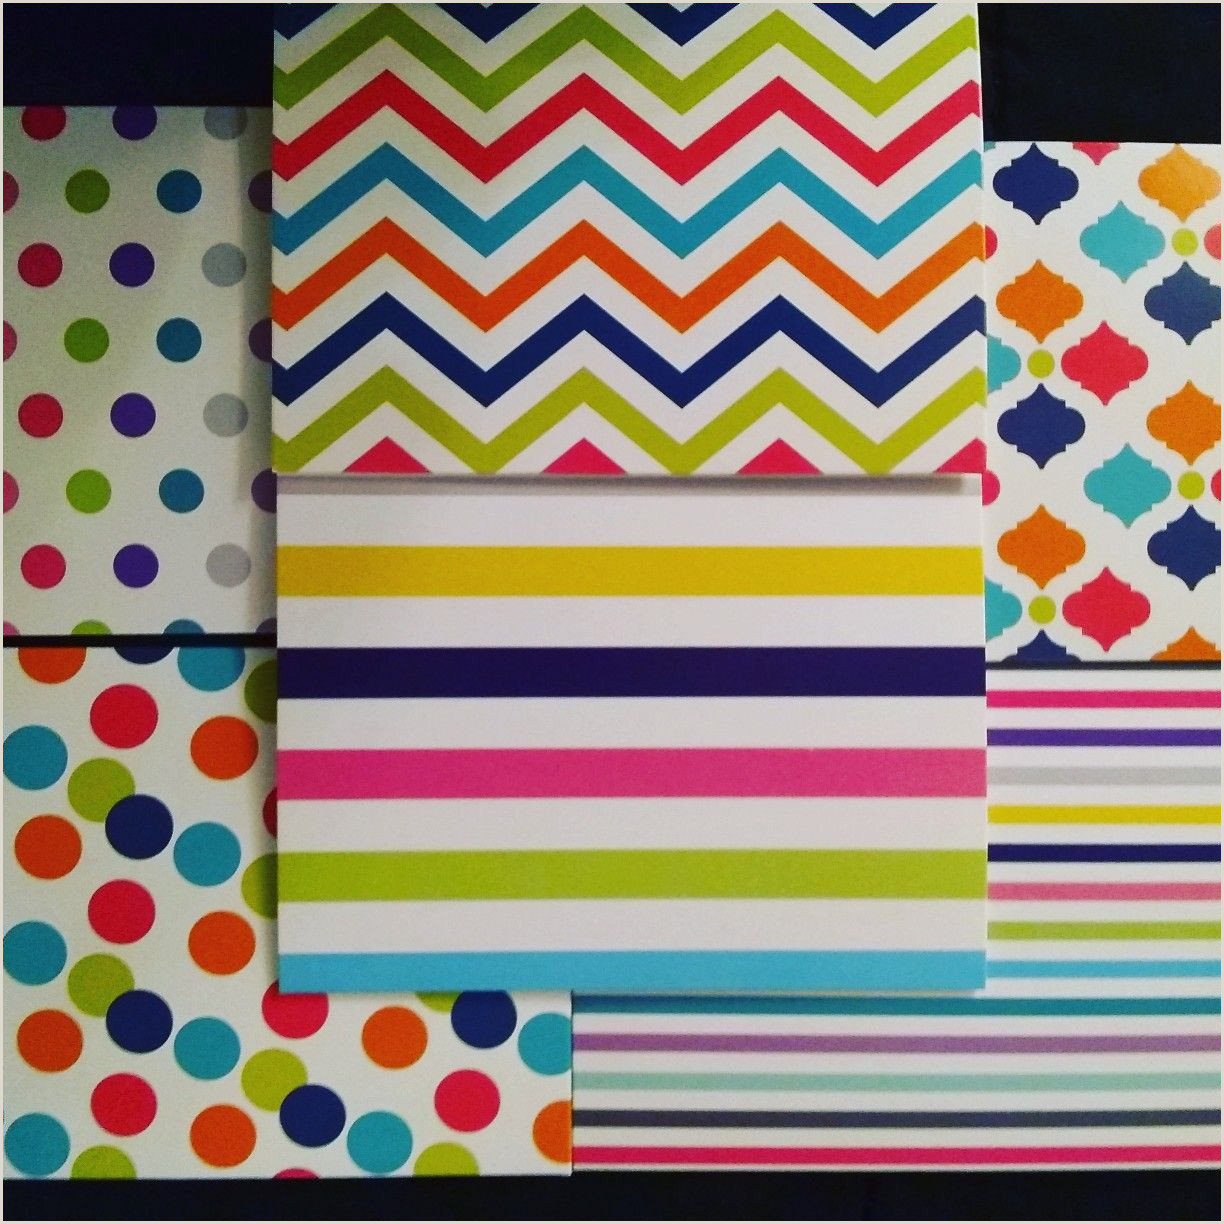 Cool Things To Do With Cards The Box Contains 6 Different Colorful Designed Cards With